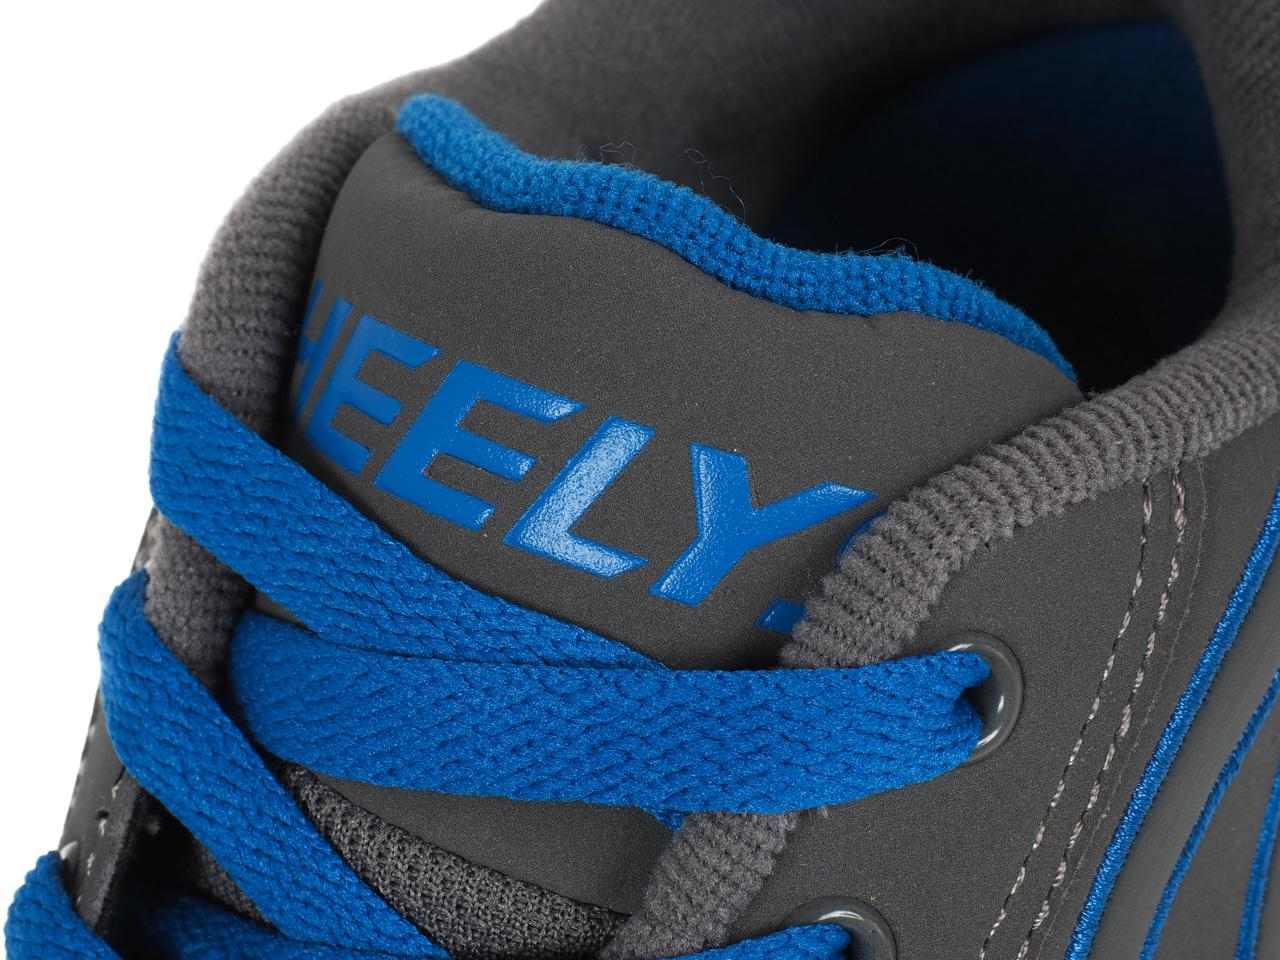 Shoes-to-Casters-Heelys-Propel-2-0-Grey-Royal-Grey-15616-New thumbnail 2